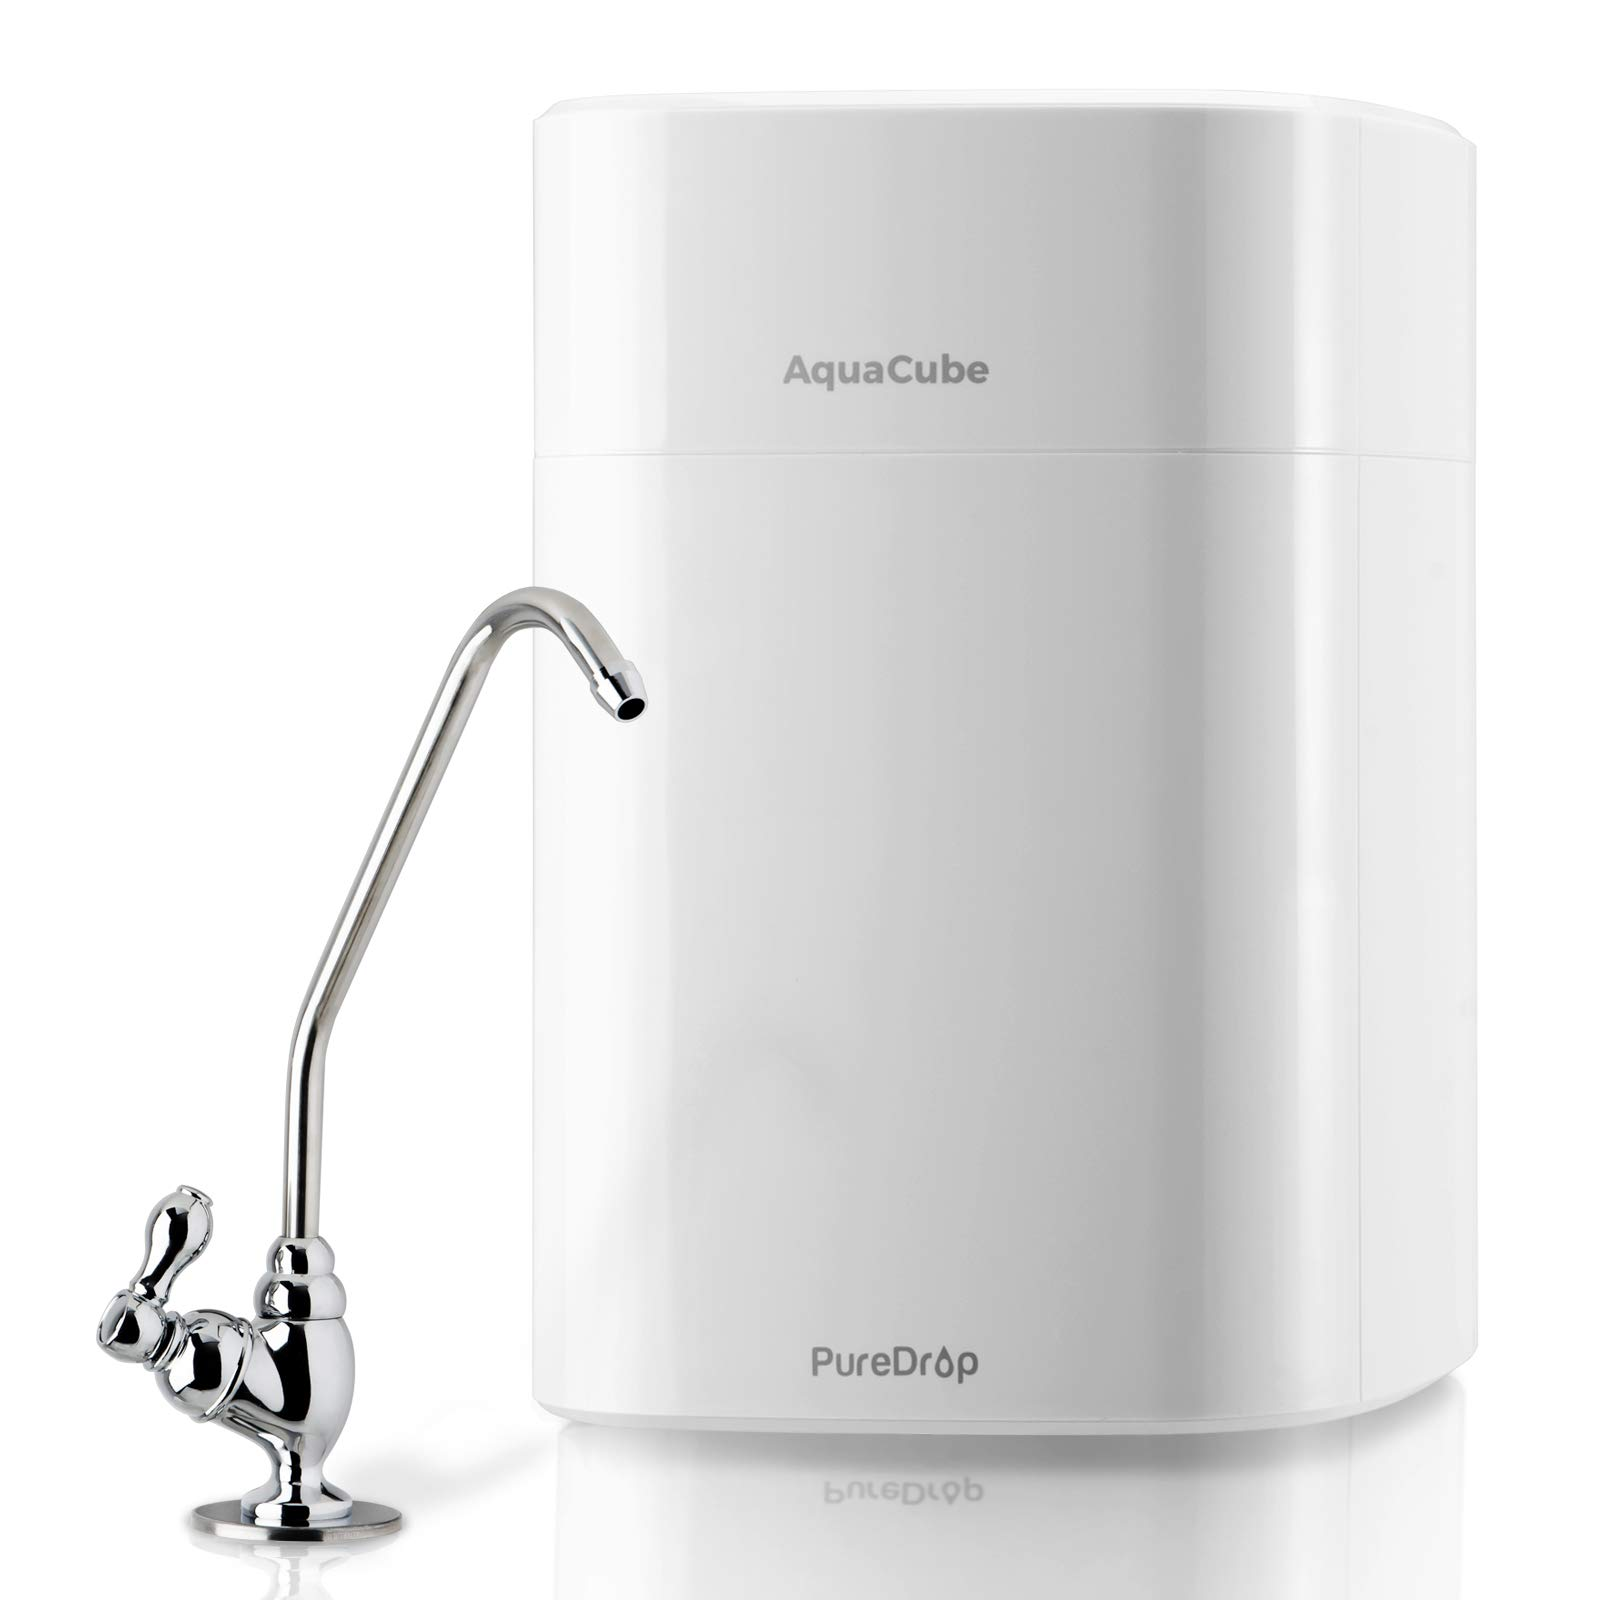 PureDrop CUW4 Aquacube Tankless Drinking Water Filter System Compact Ultra Filtration